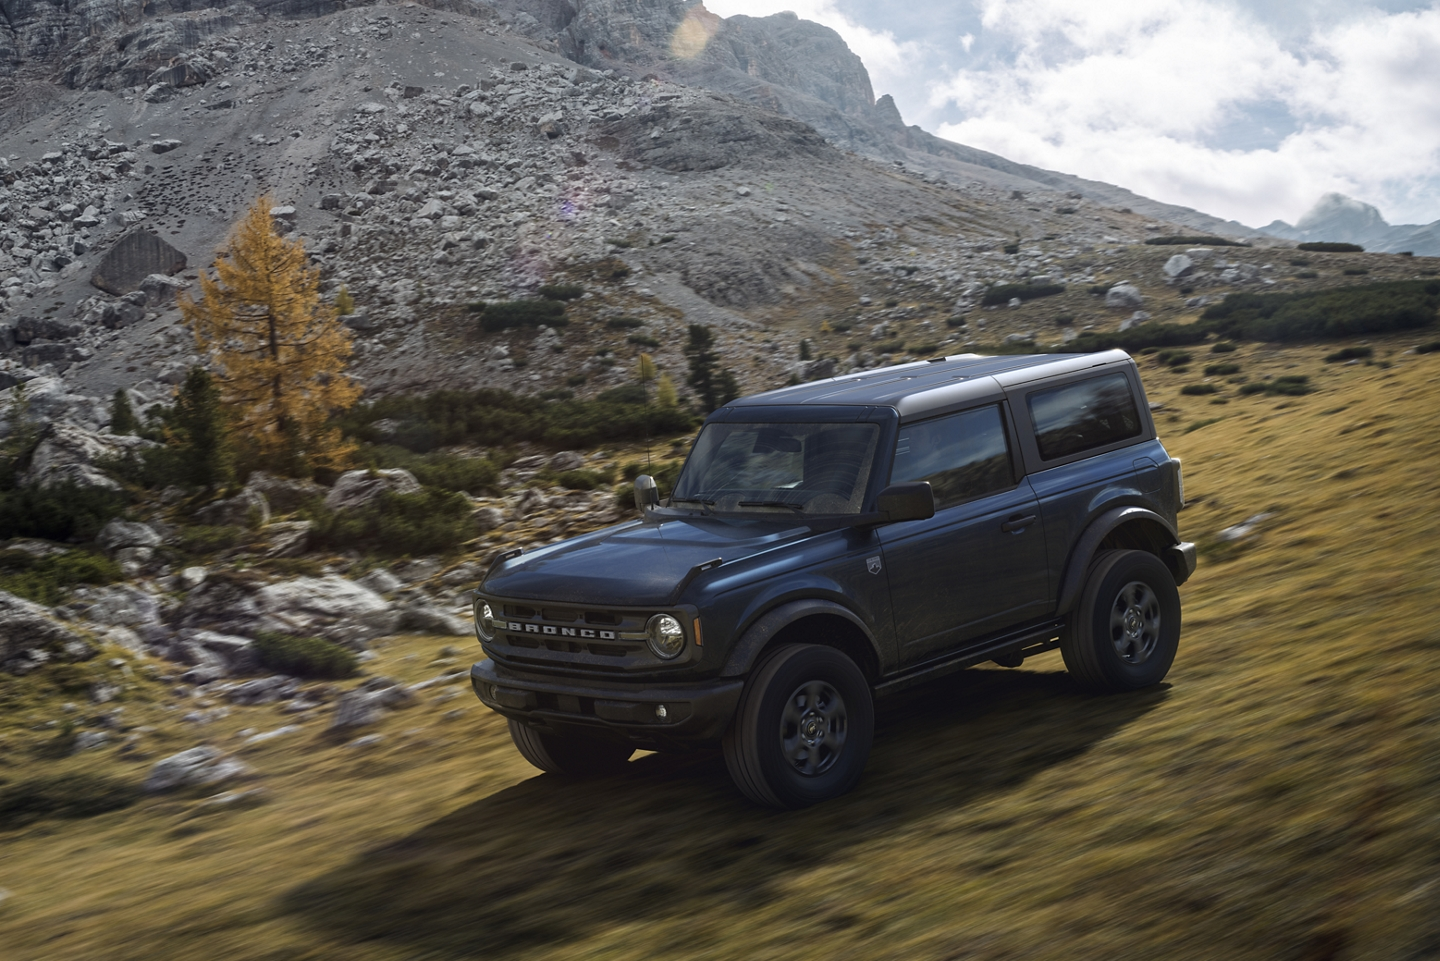 2021 Ford Bronco being driven down the side of a mountain